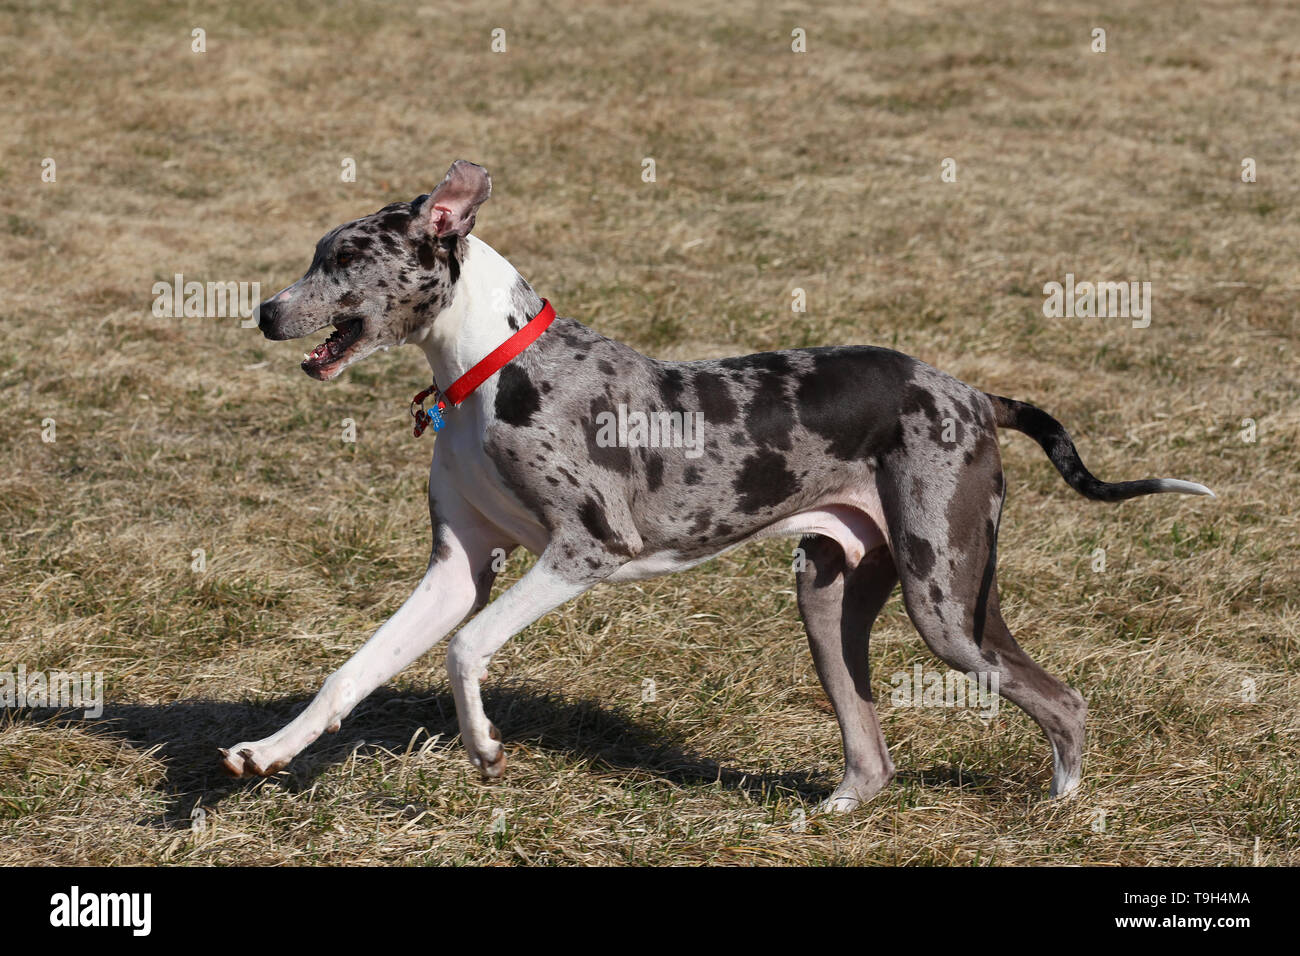 GREAT DANE - Stock Image